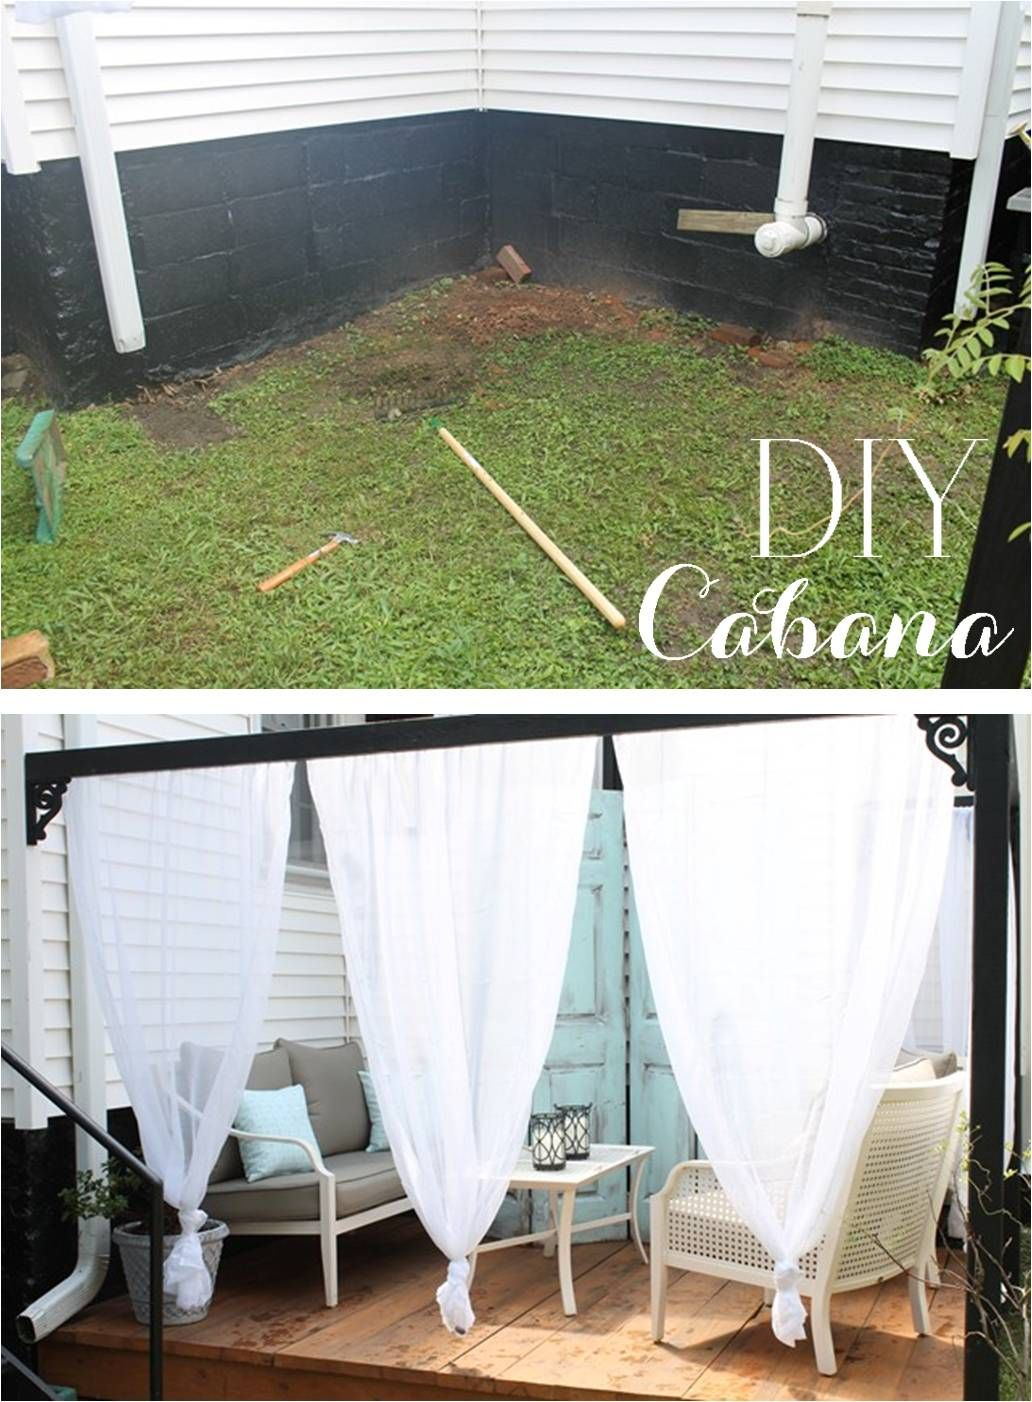 Diy Cabana Curtains Diy Outdoor Cabana With Curtains Curb Appeal Pinterest